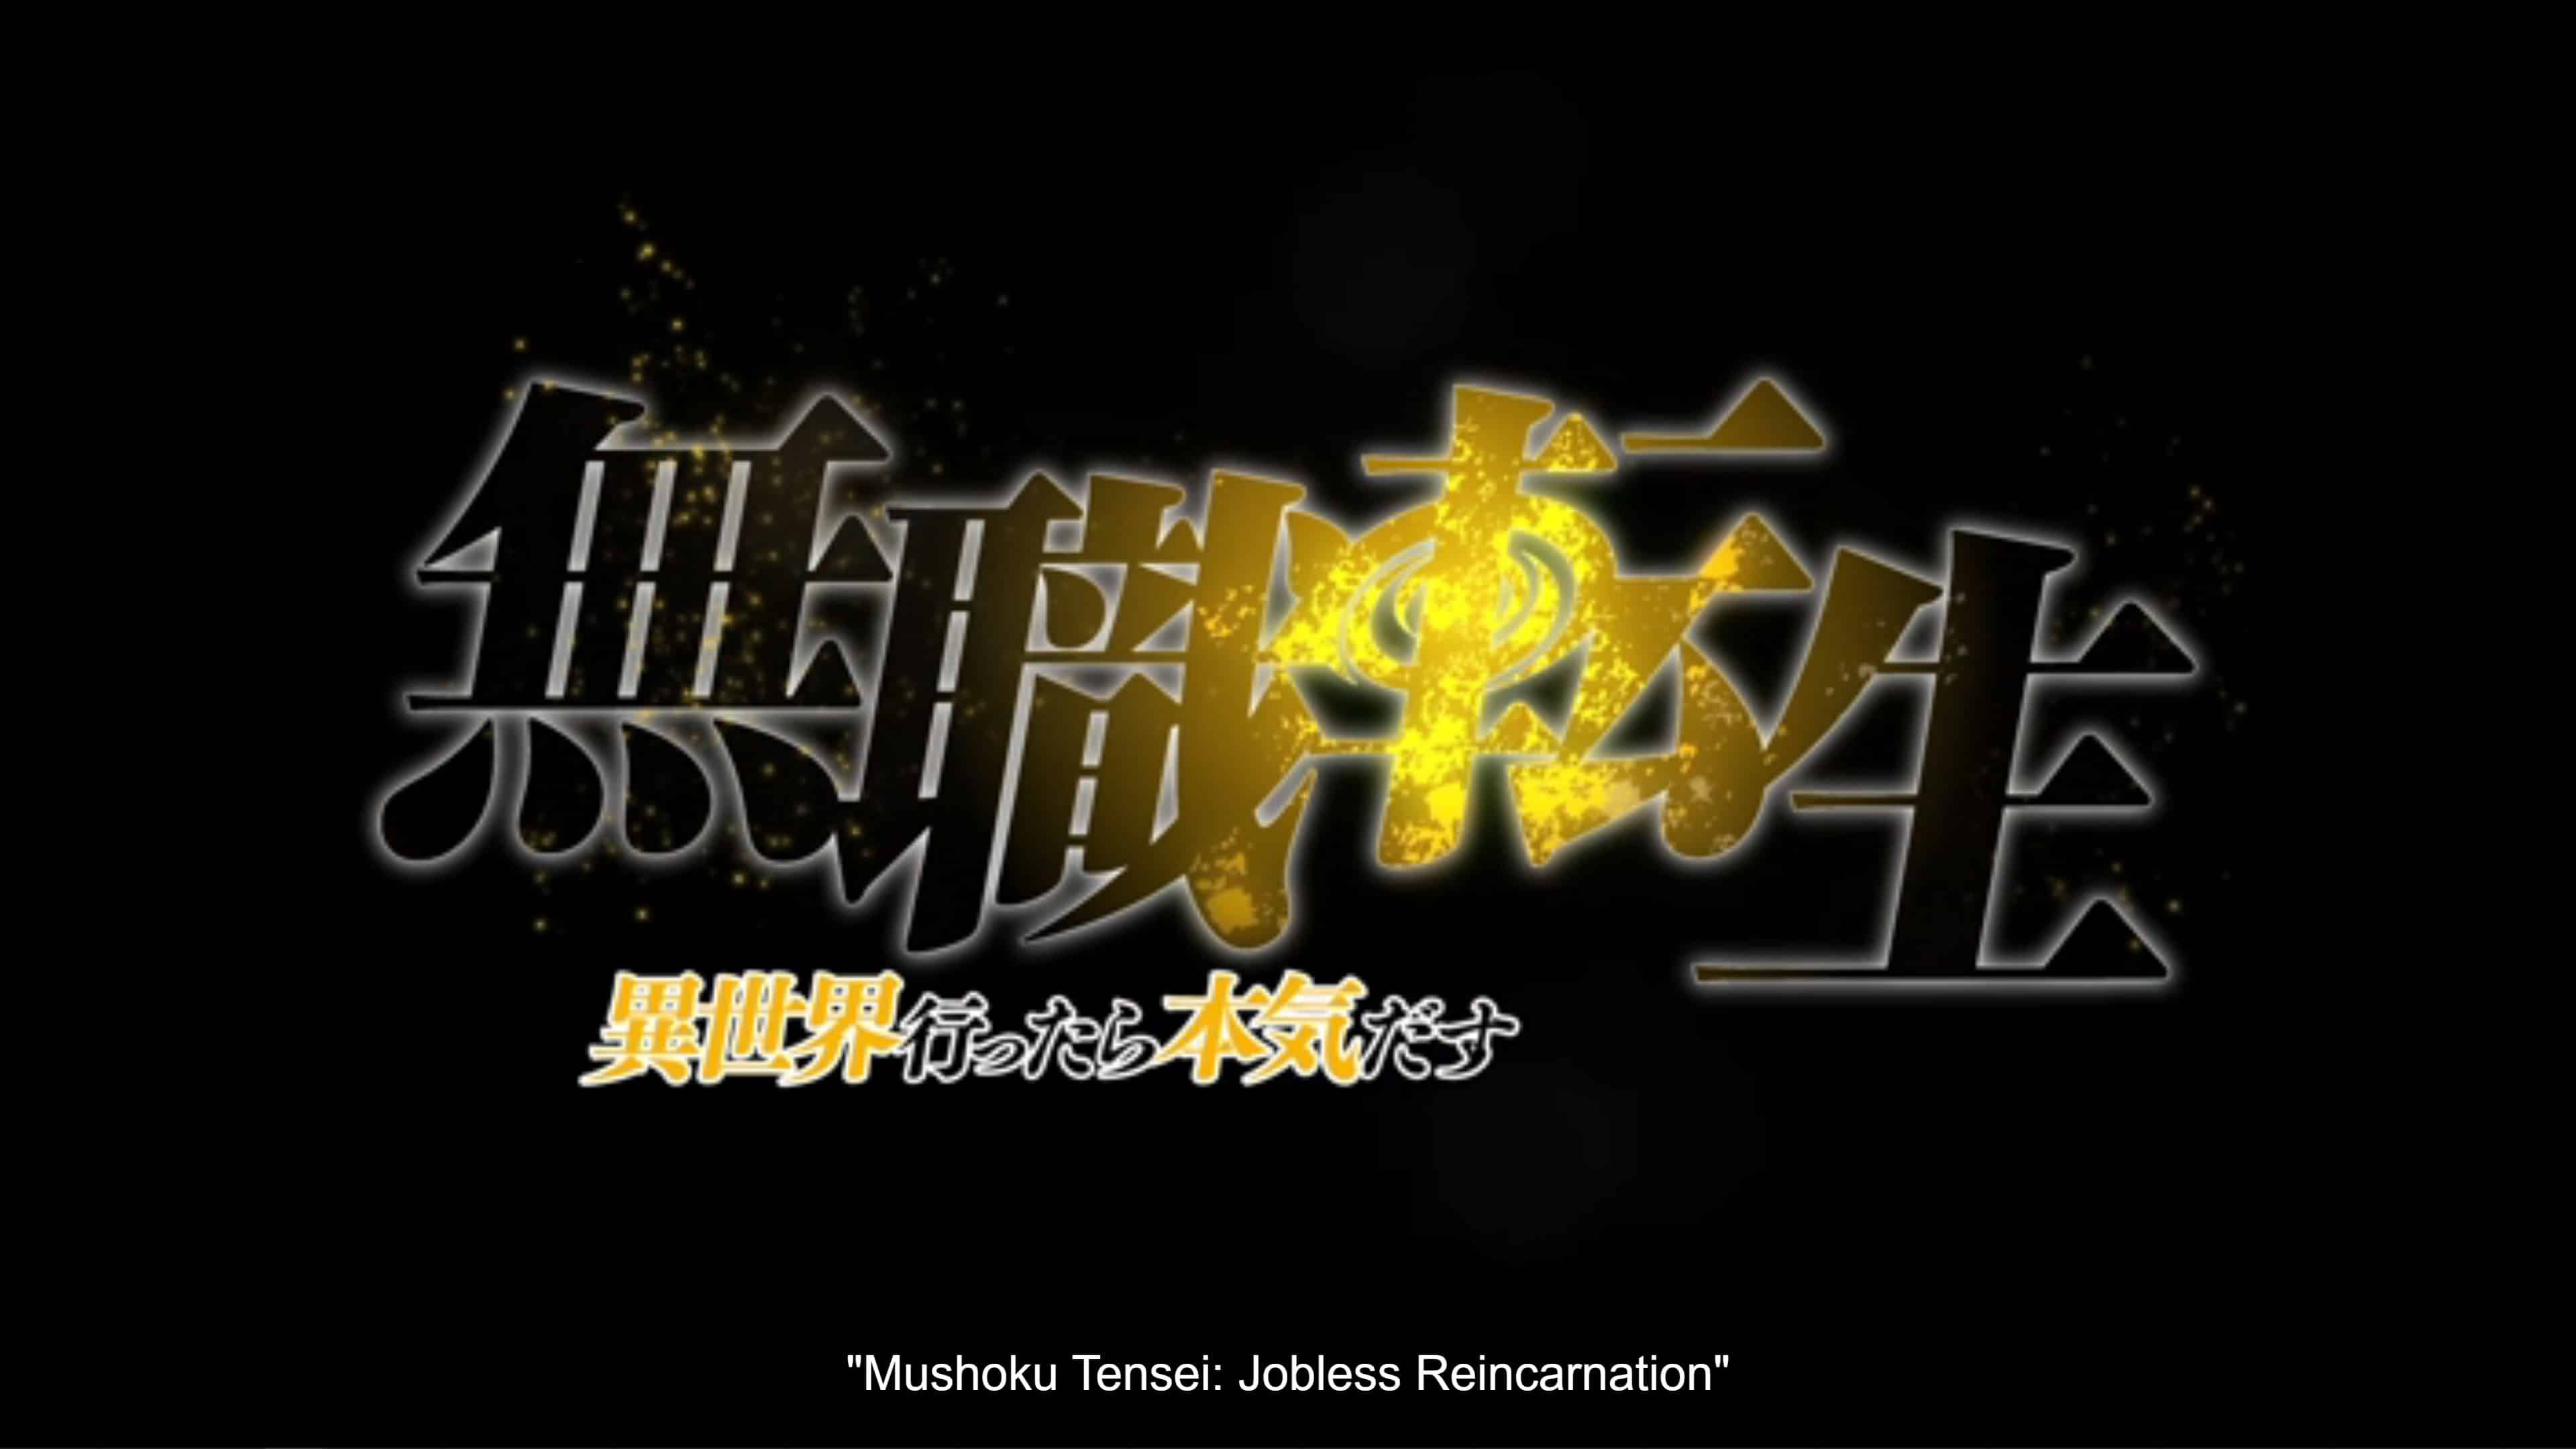 Title Card - Mushoku Tensei Jobless Reincarnation Season 1 Episode 1 Jobless Reincarnation [Series Premiere]